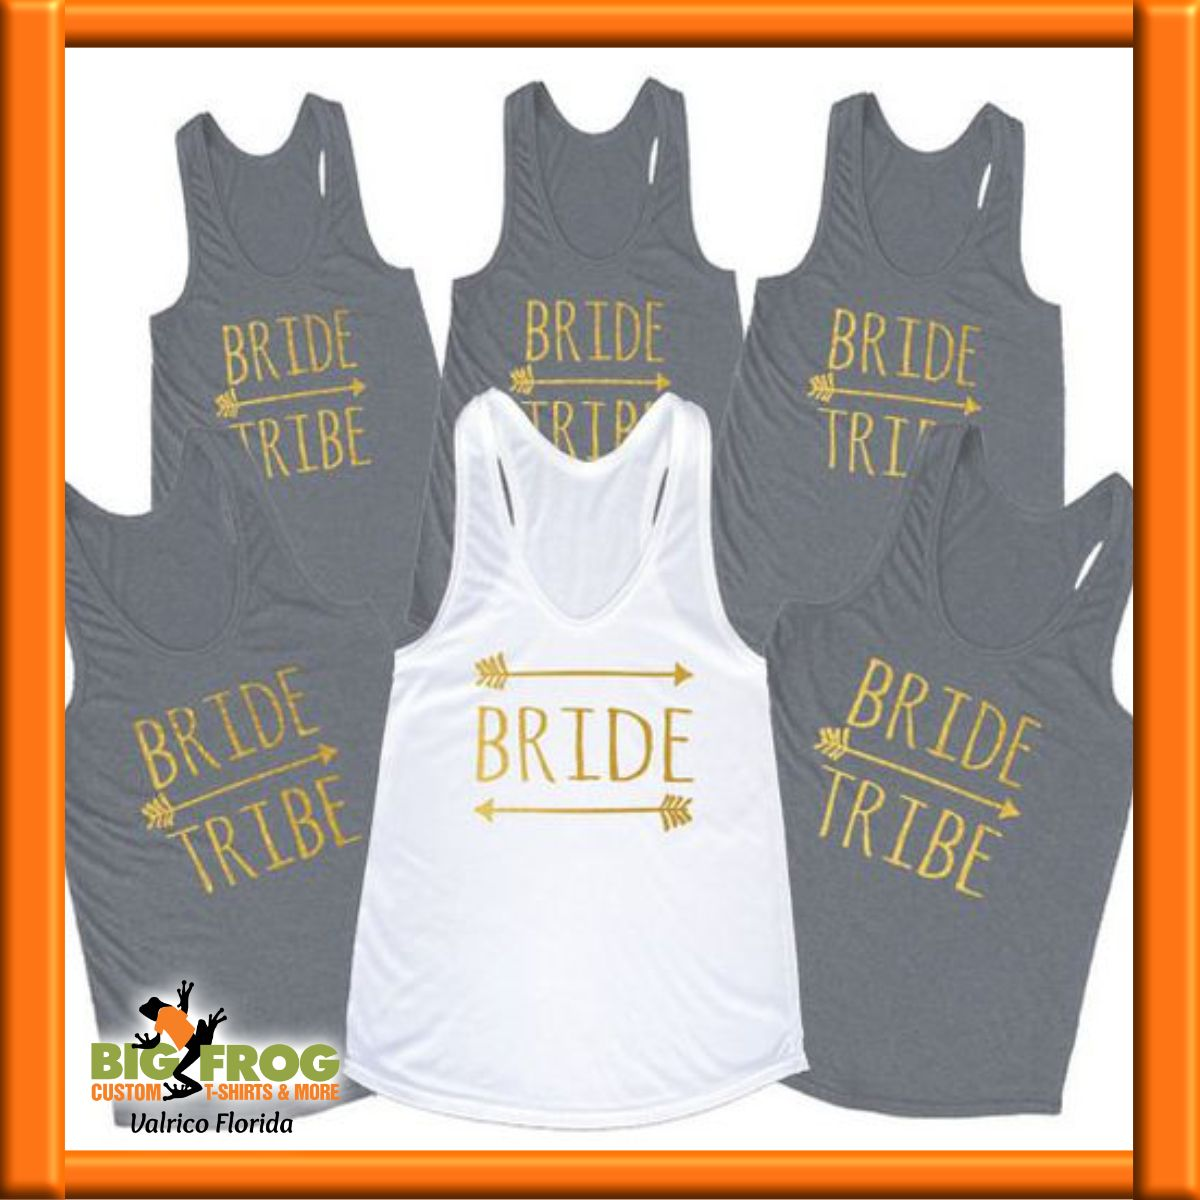 282c8026e Bride Tribe custom tanks. Get your custom graphic tees at Big Frog in  Valrico. Contact us at DesignersValrico@BigFrog.com